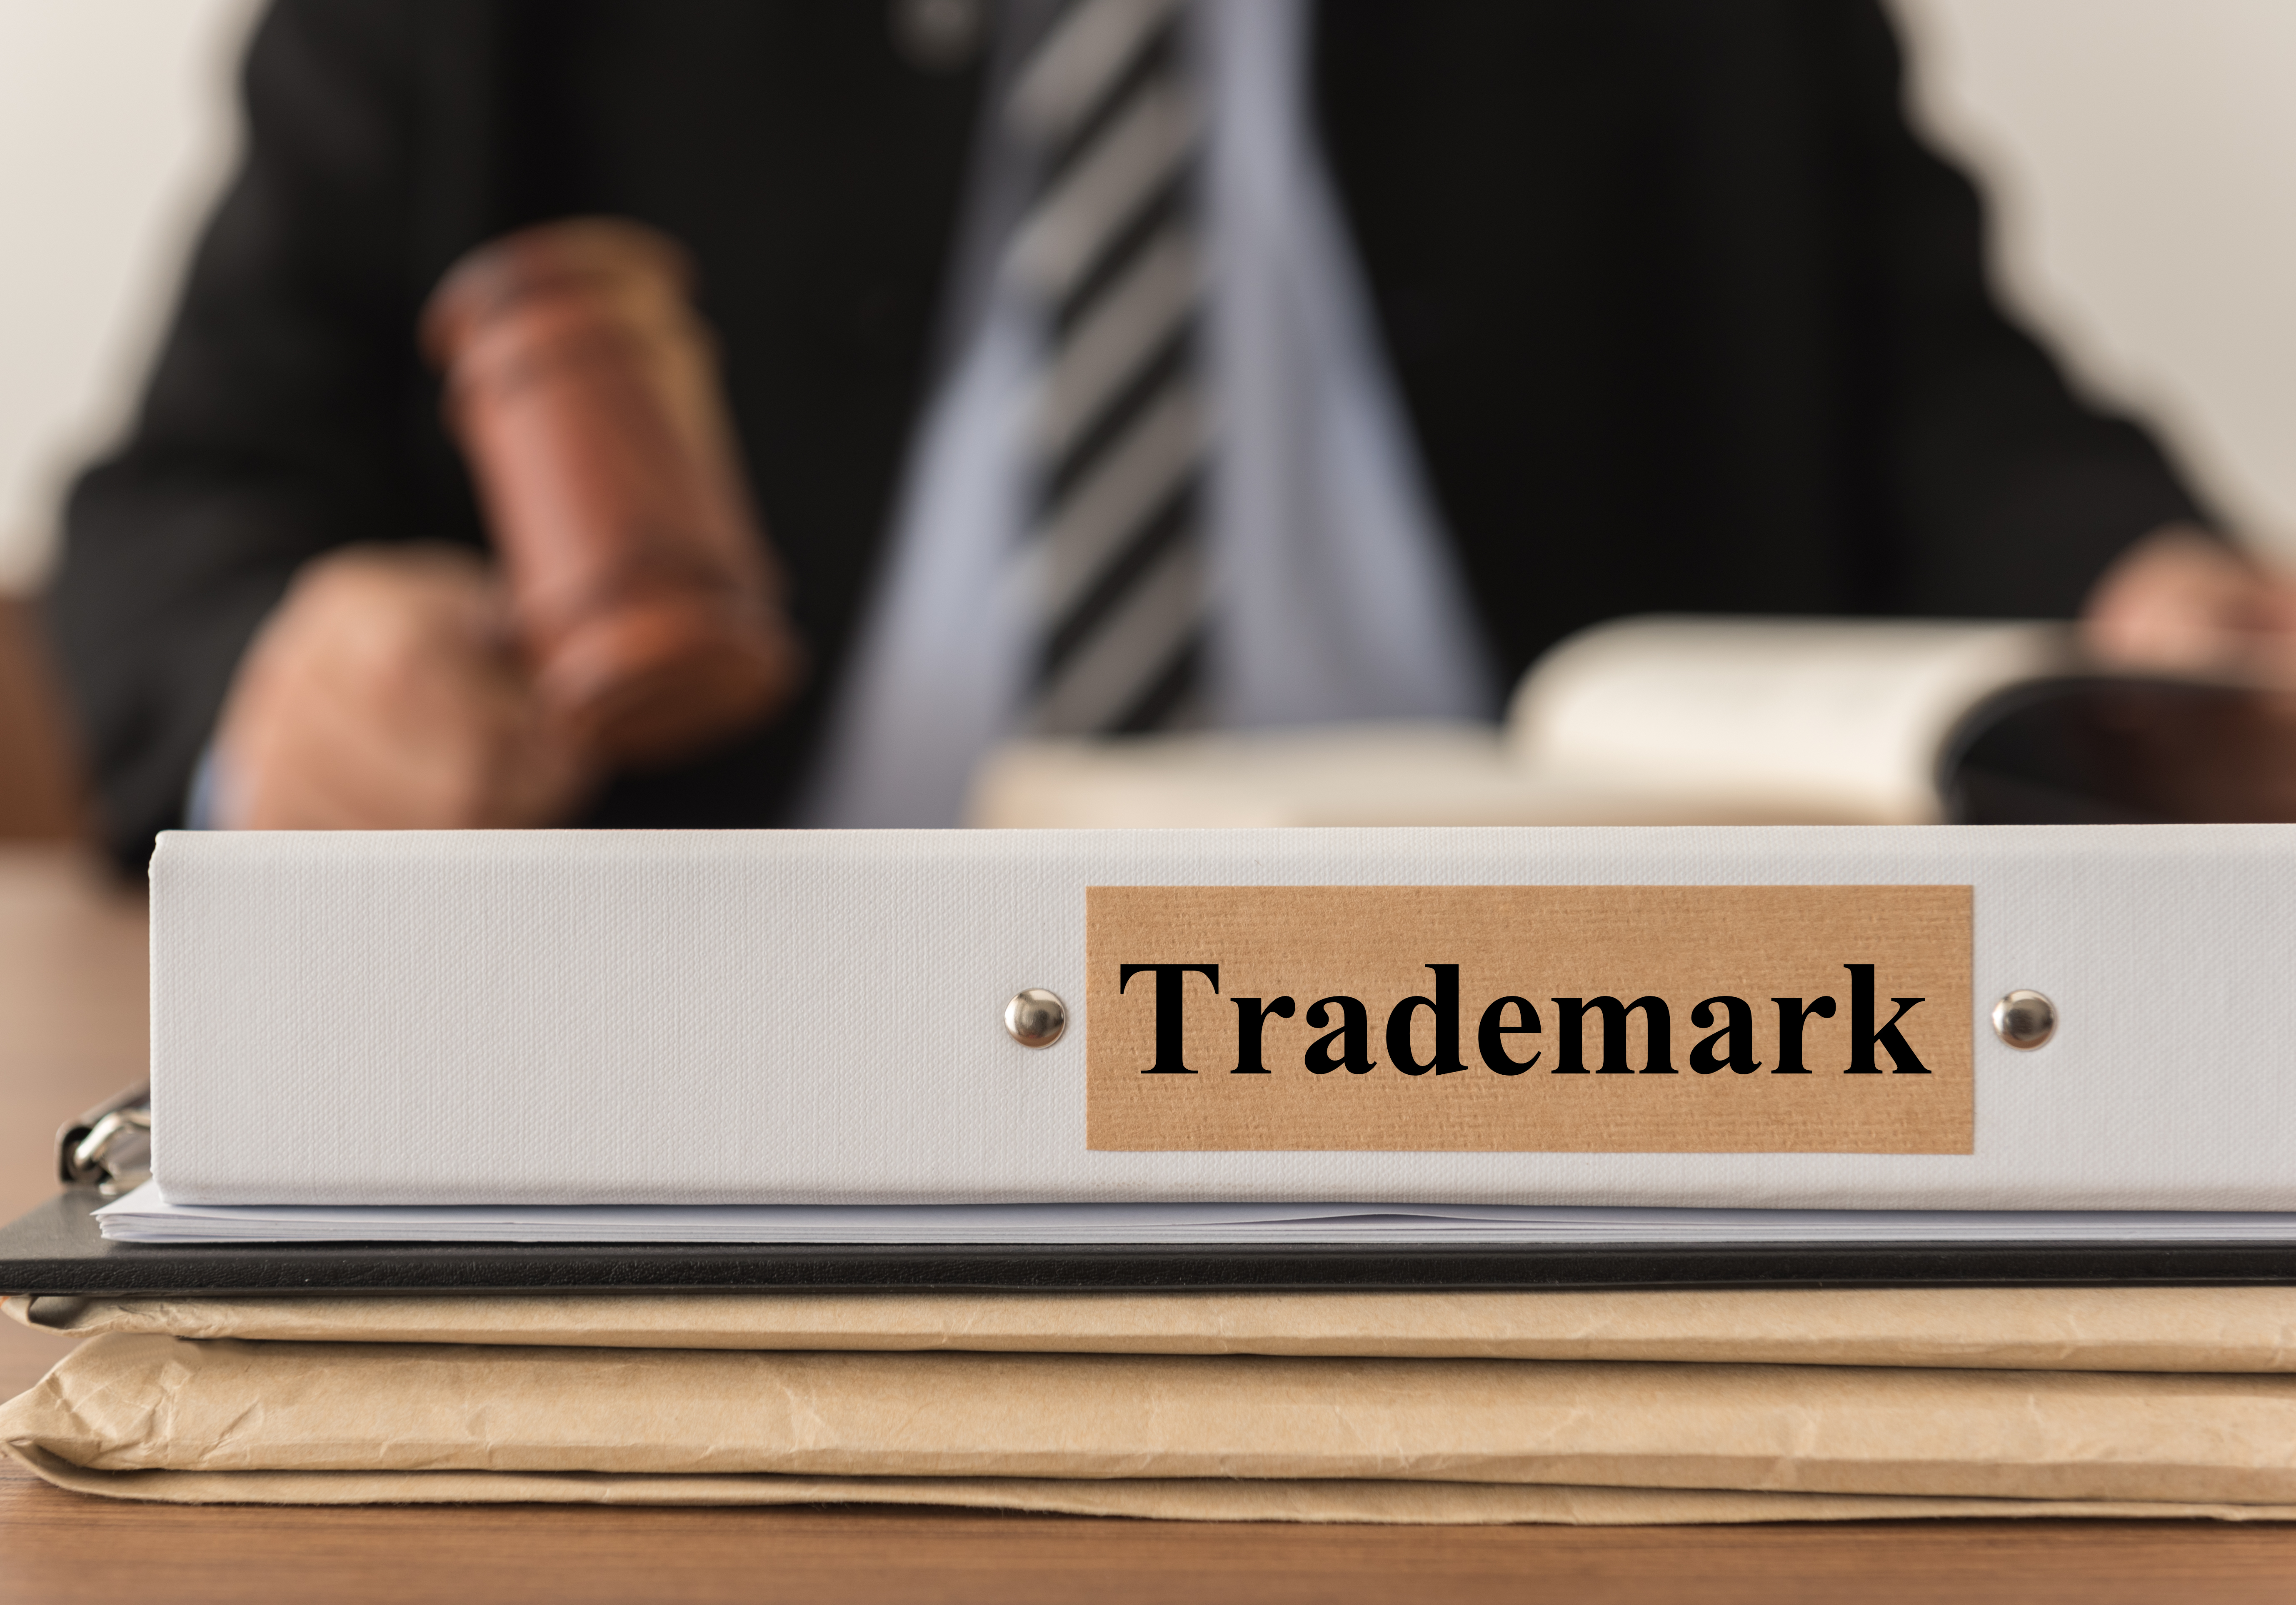 Policing Trademarks In A Social Media World   Above the Law